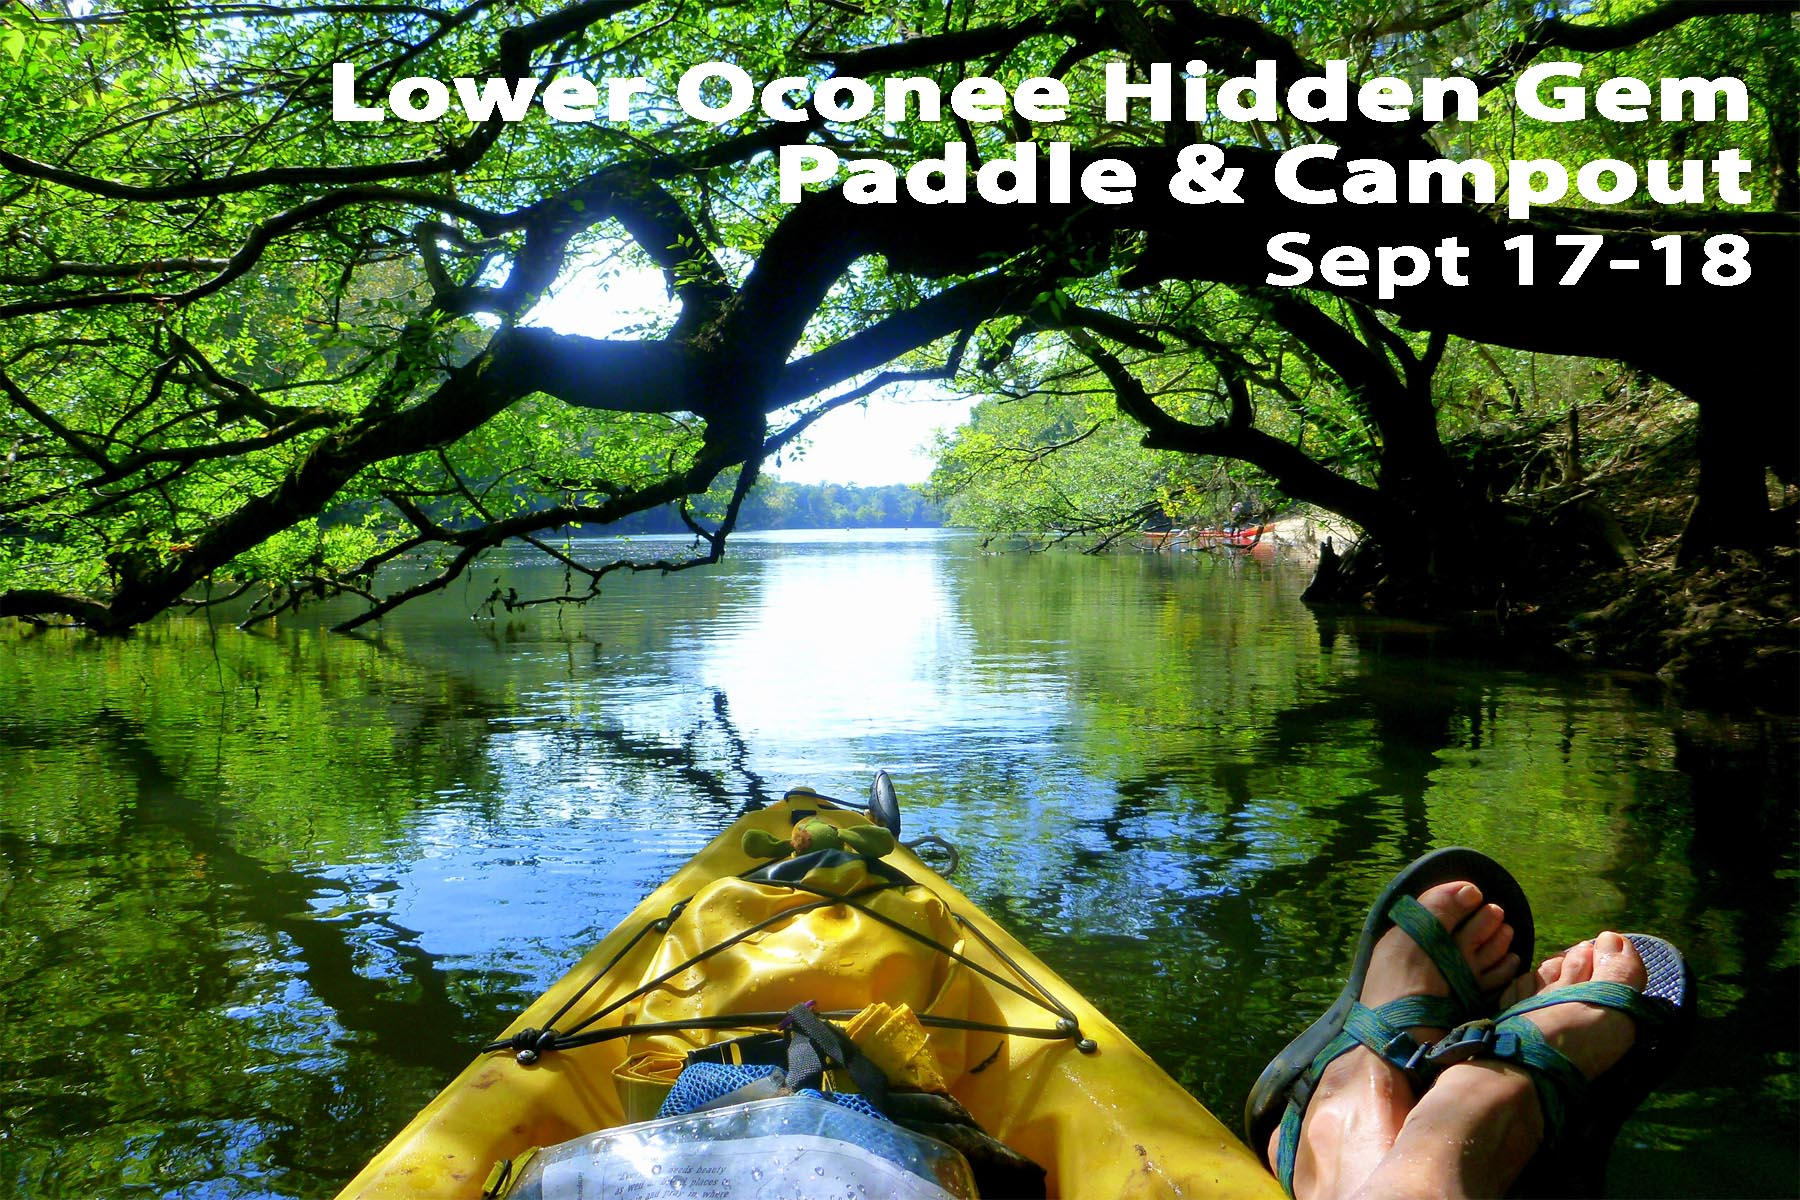 Lower Oconee River Hidden Gem Paddle Campout